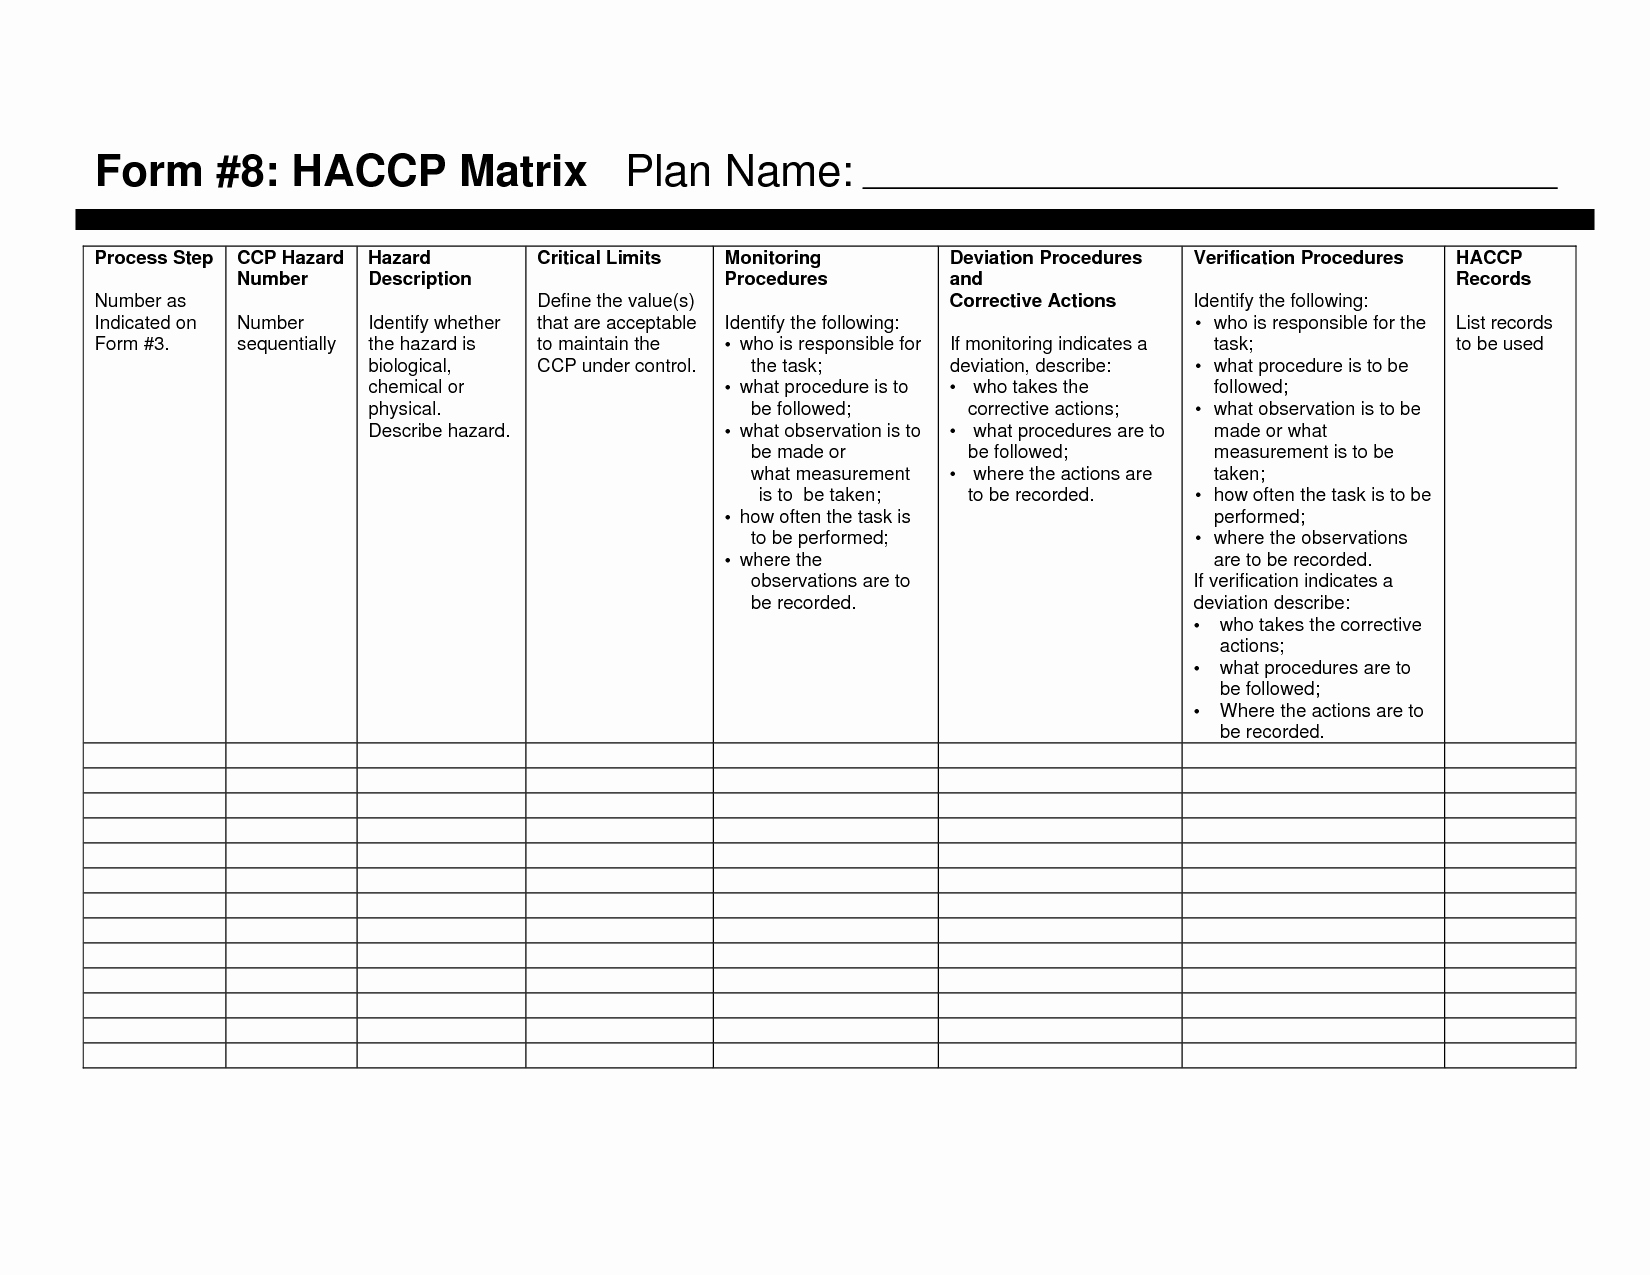 Product Recall Plan Template Awesome Haccp Plan Template